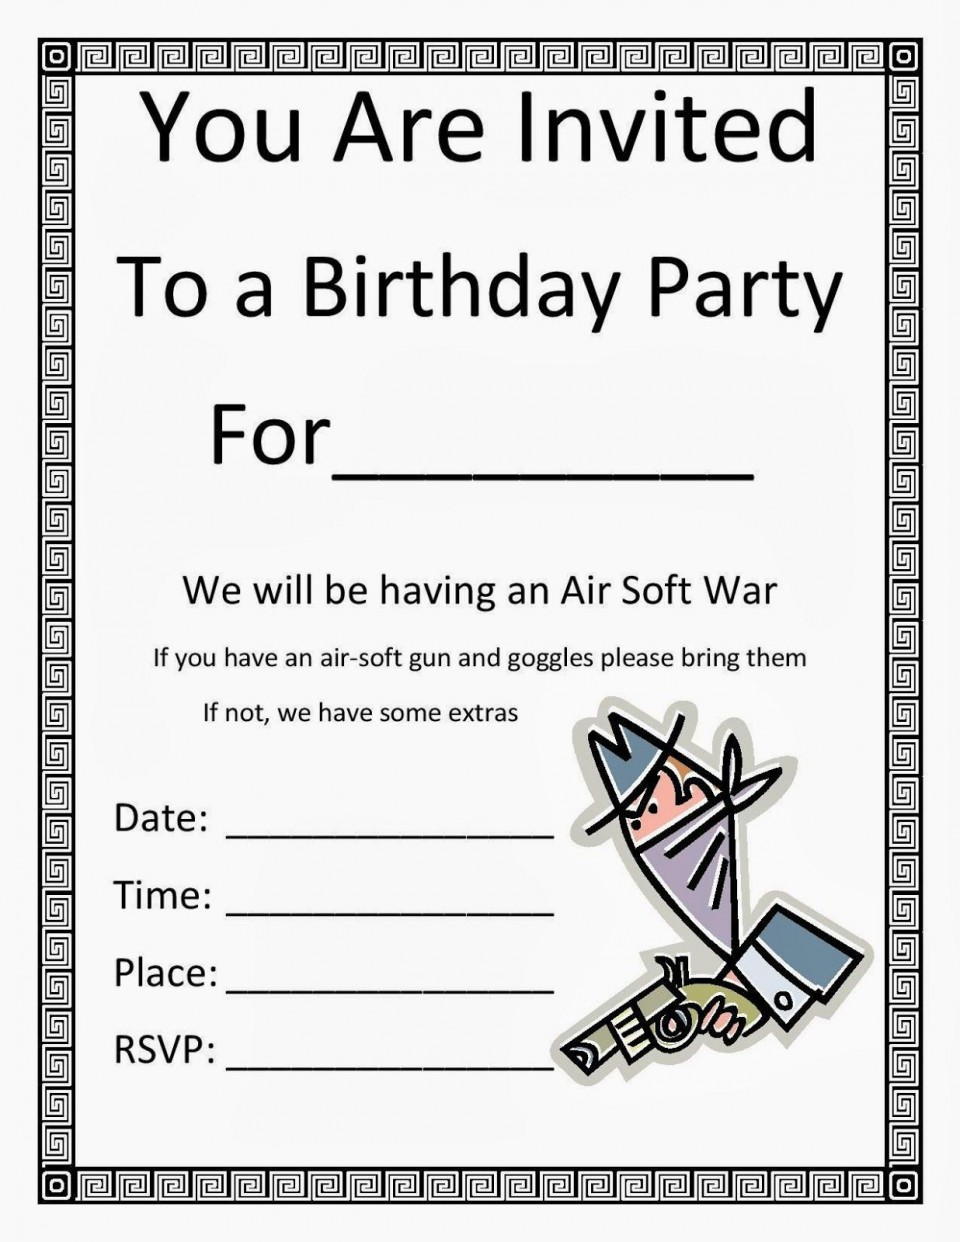 003 Exceptional Free Birthday Party Invitation Template For Word Sample 960